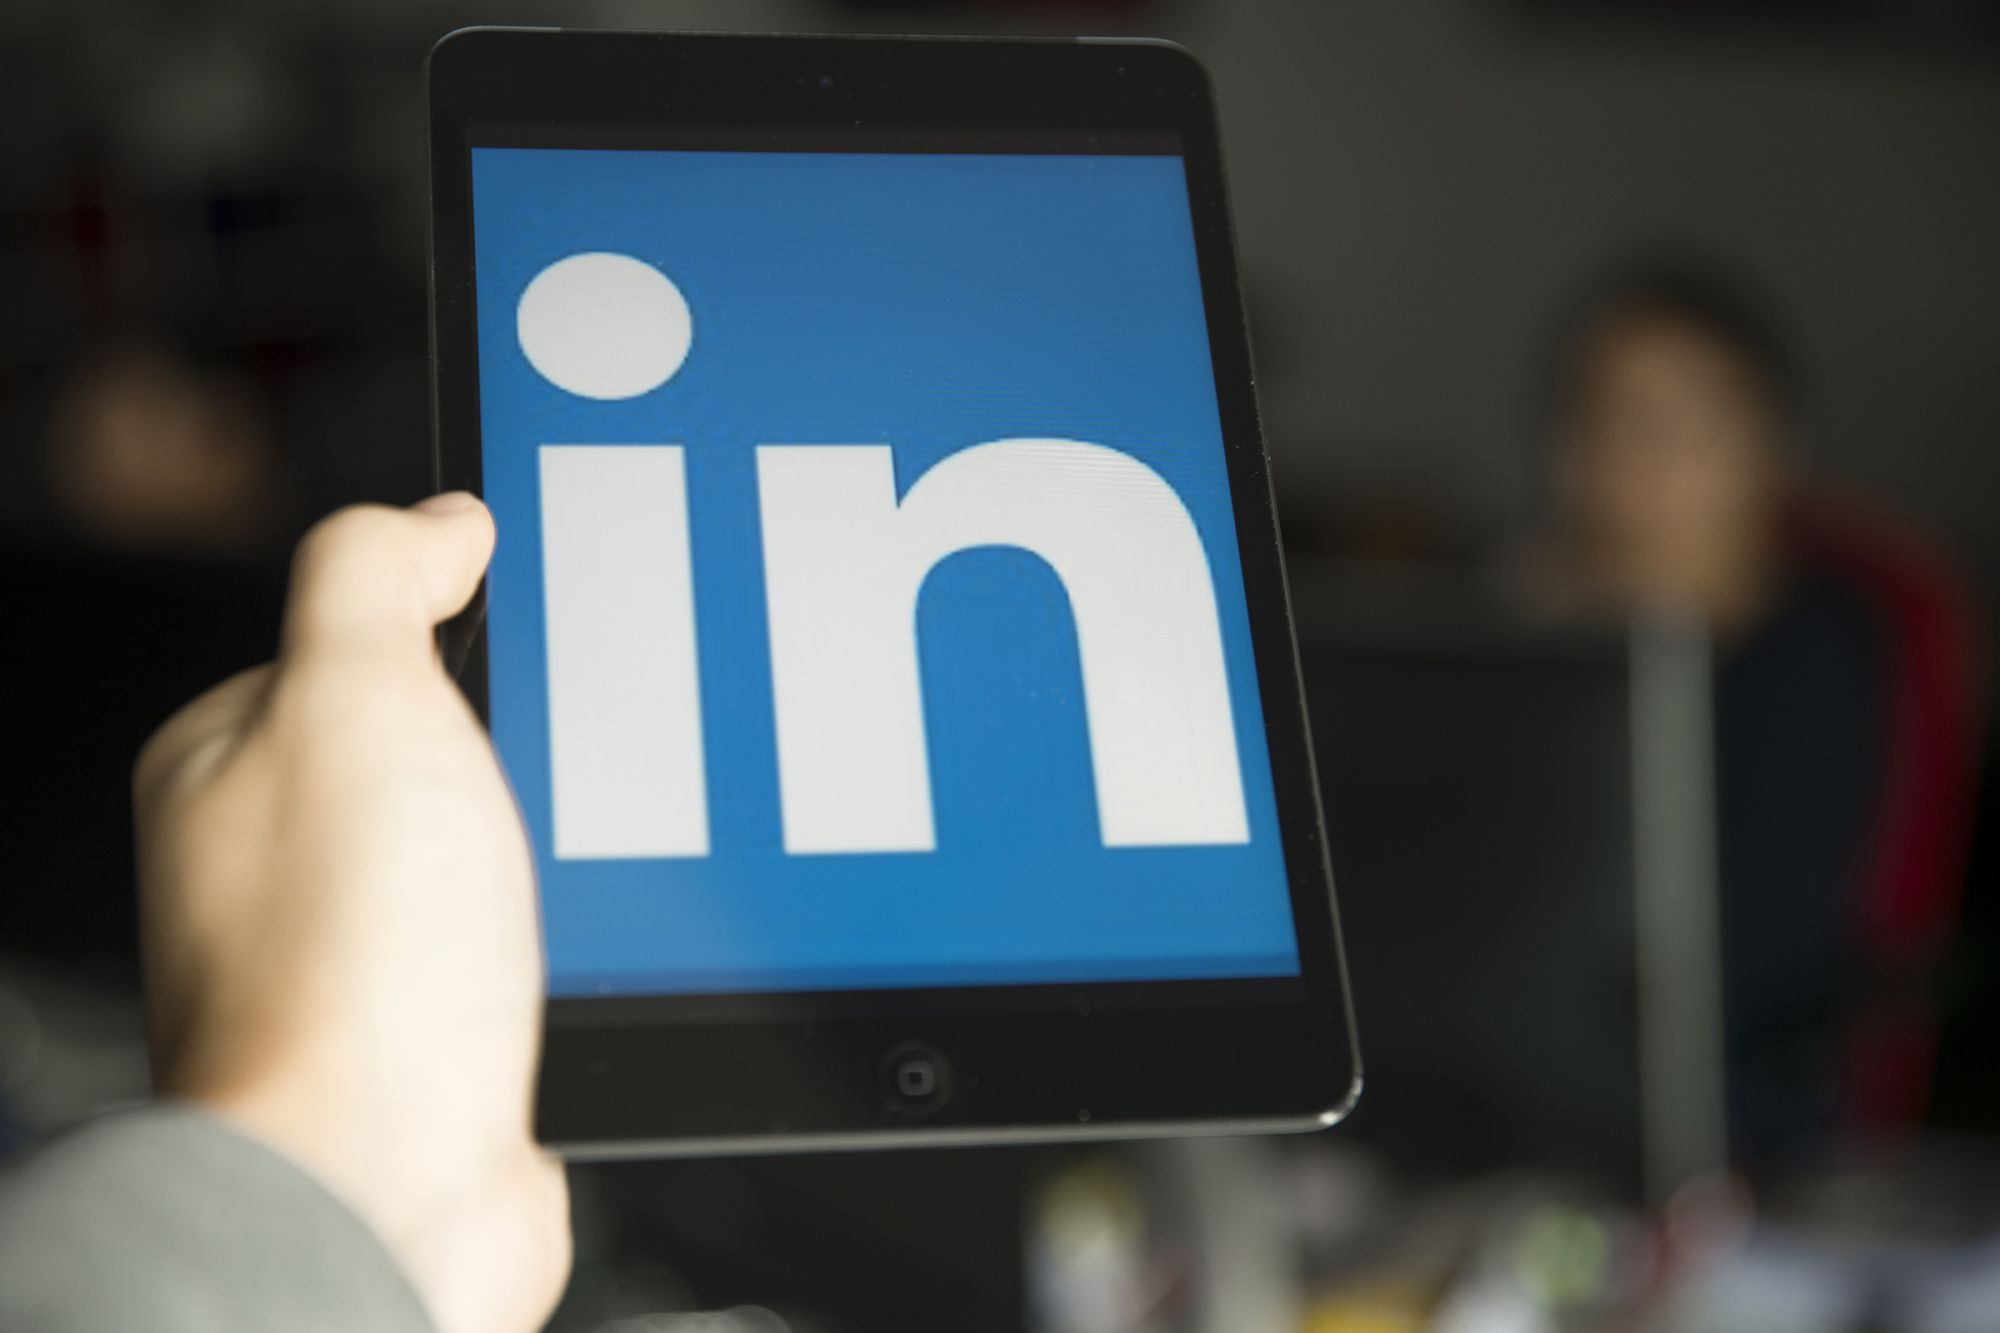 The 7 Deadly LinkedIn Sins